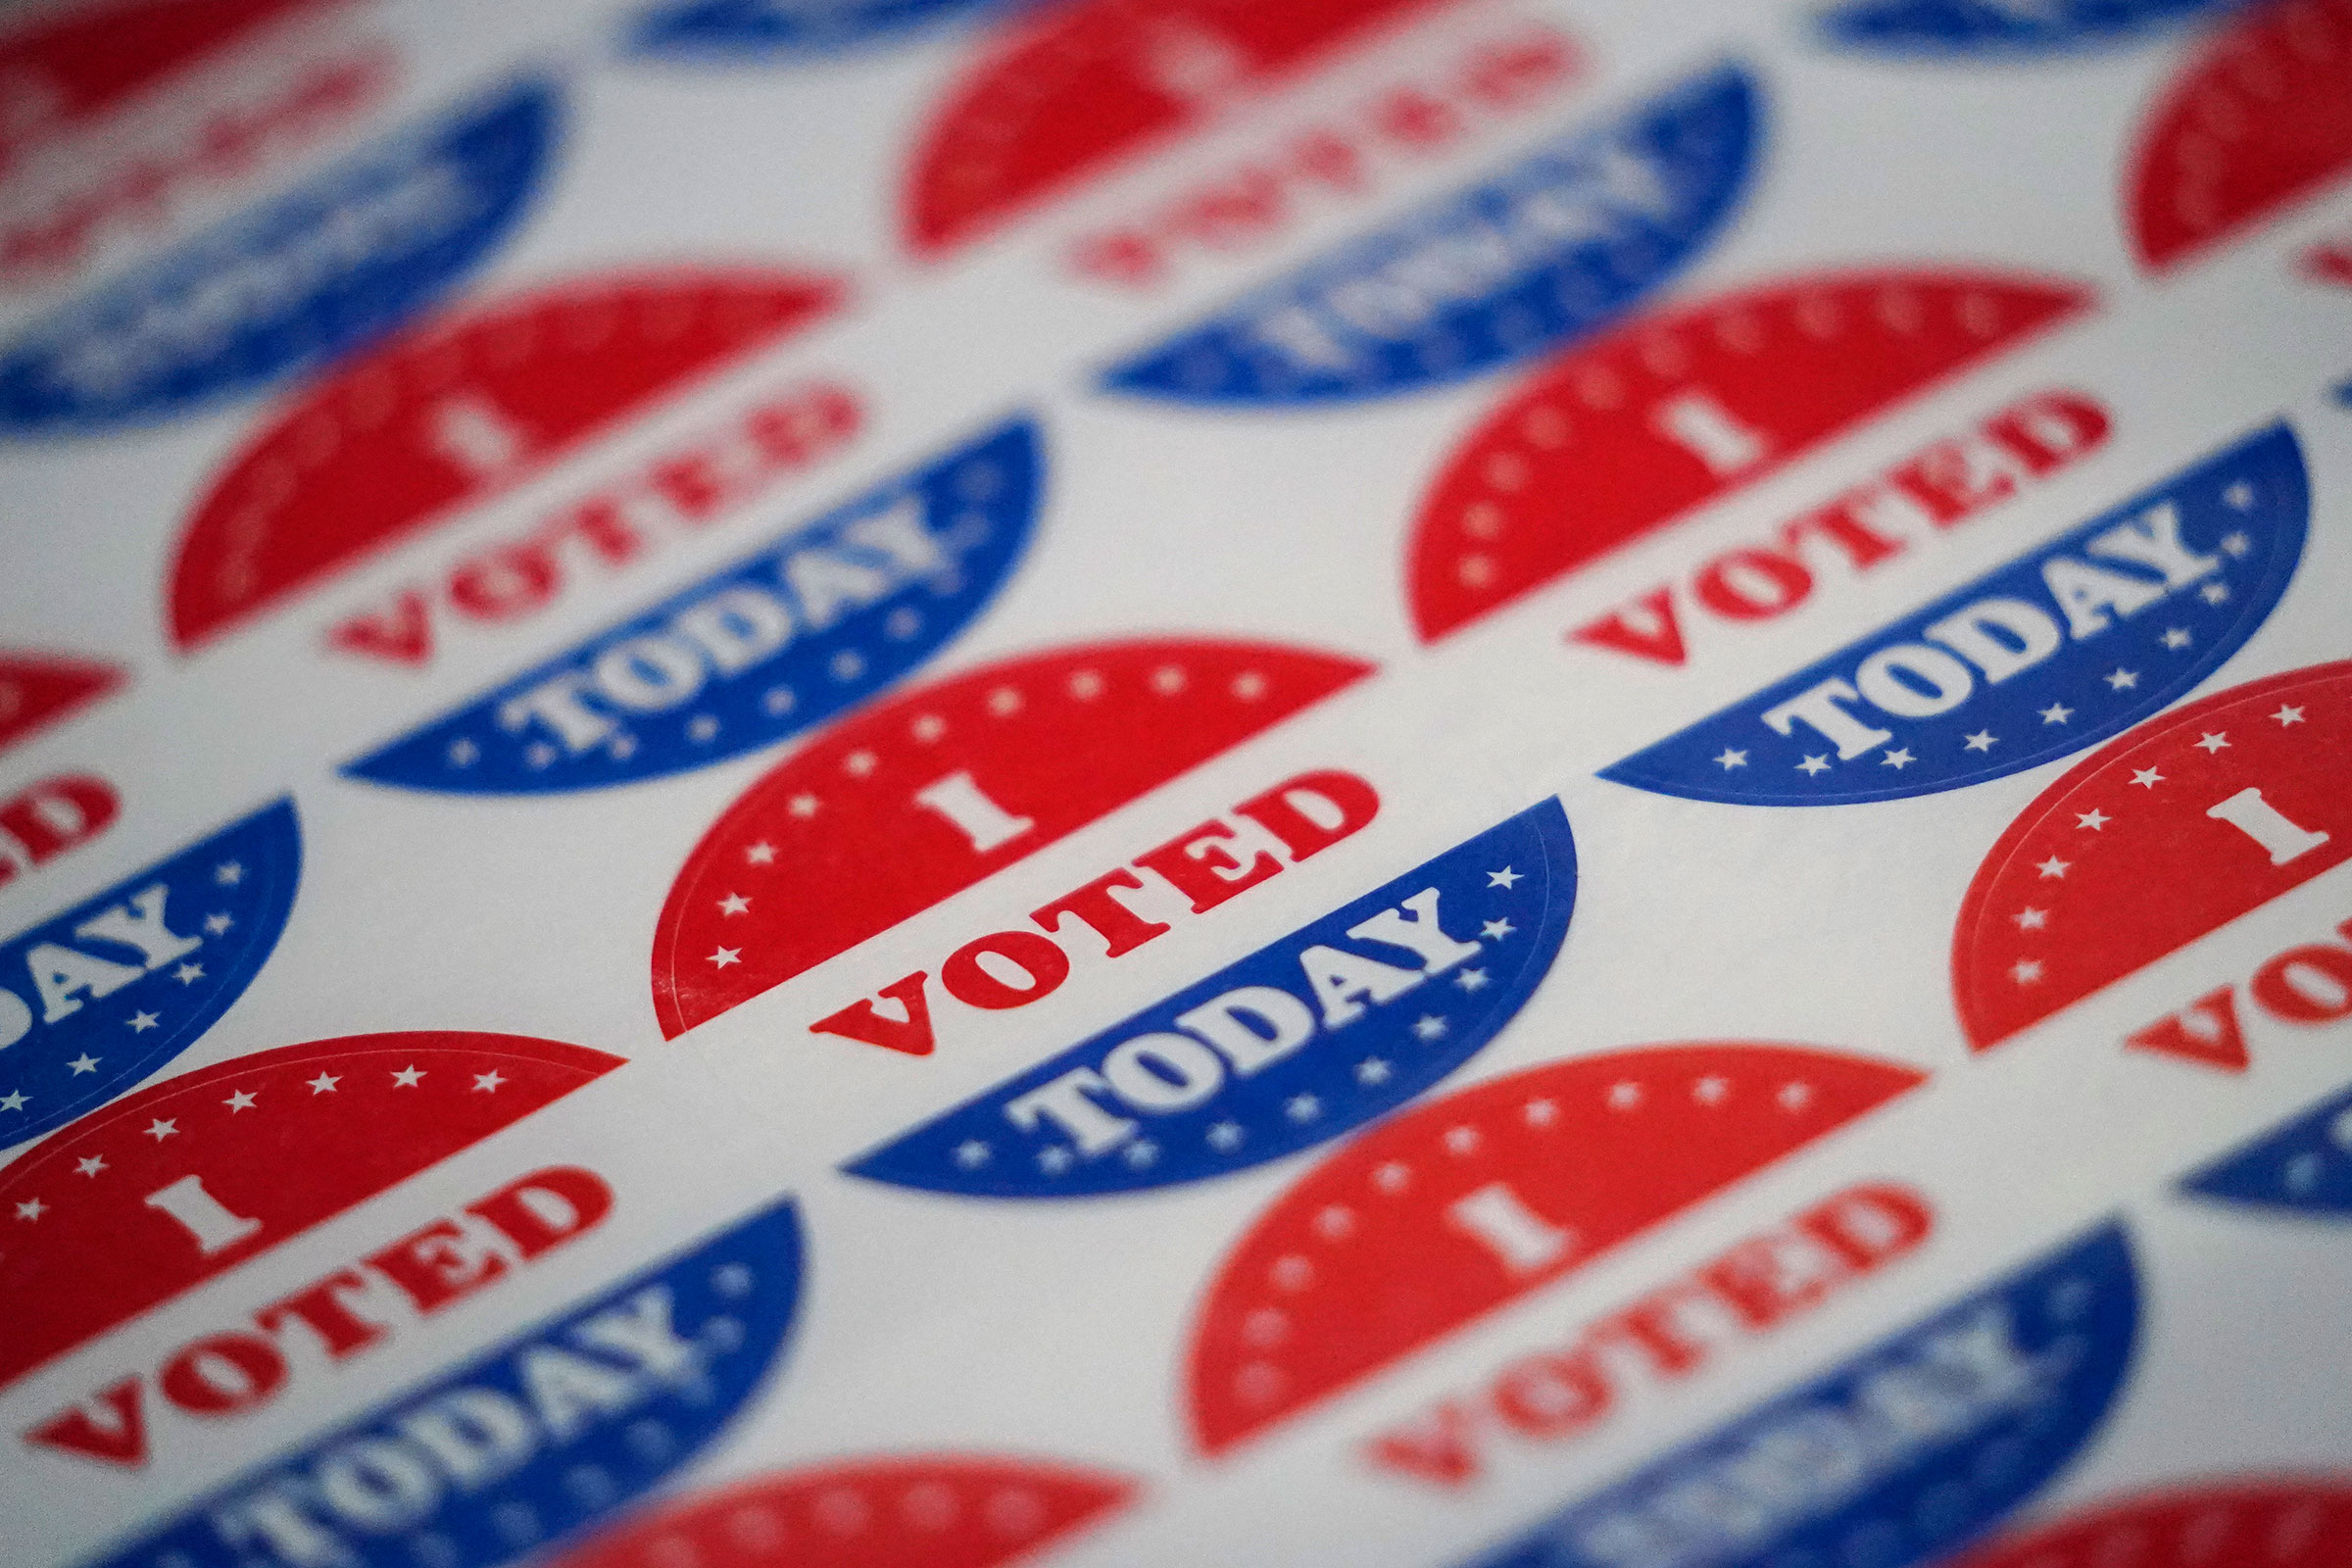 Boyd Matheson on Why the Wednesday After Election Day Matters More